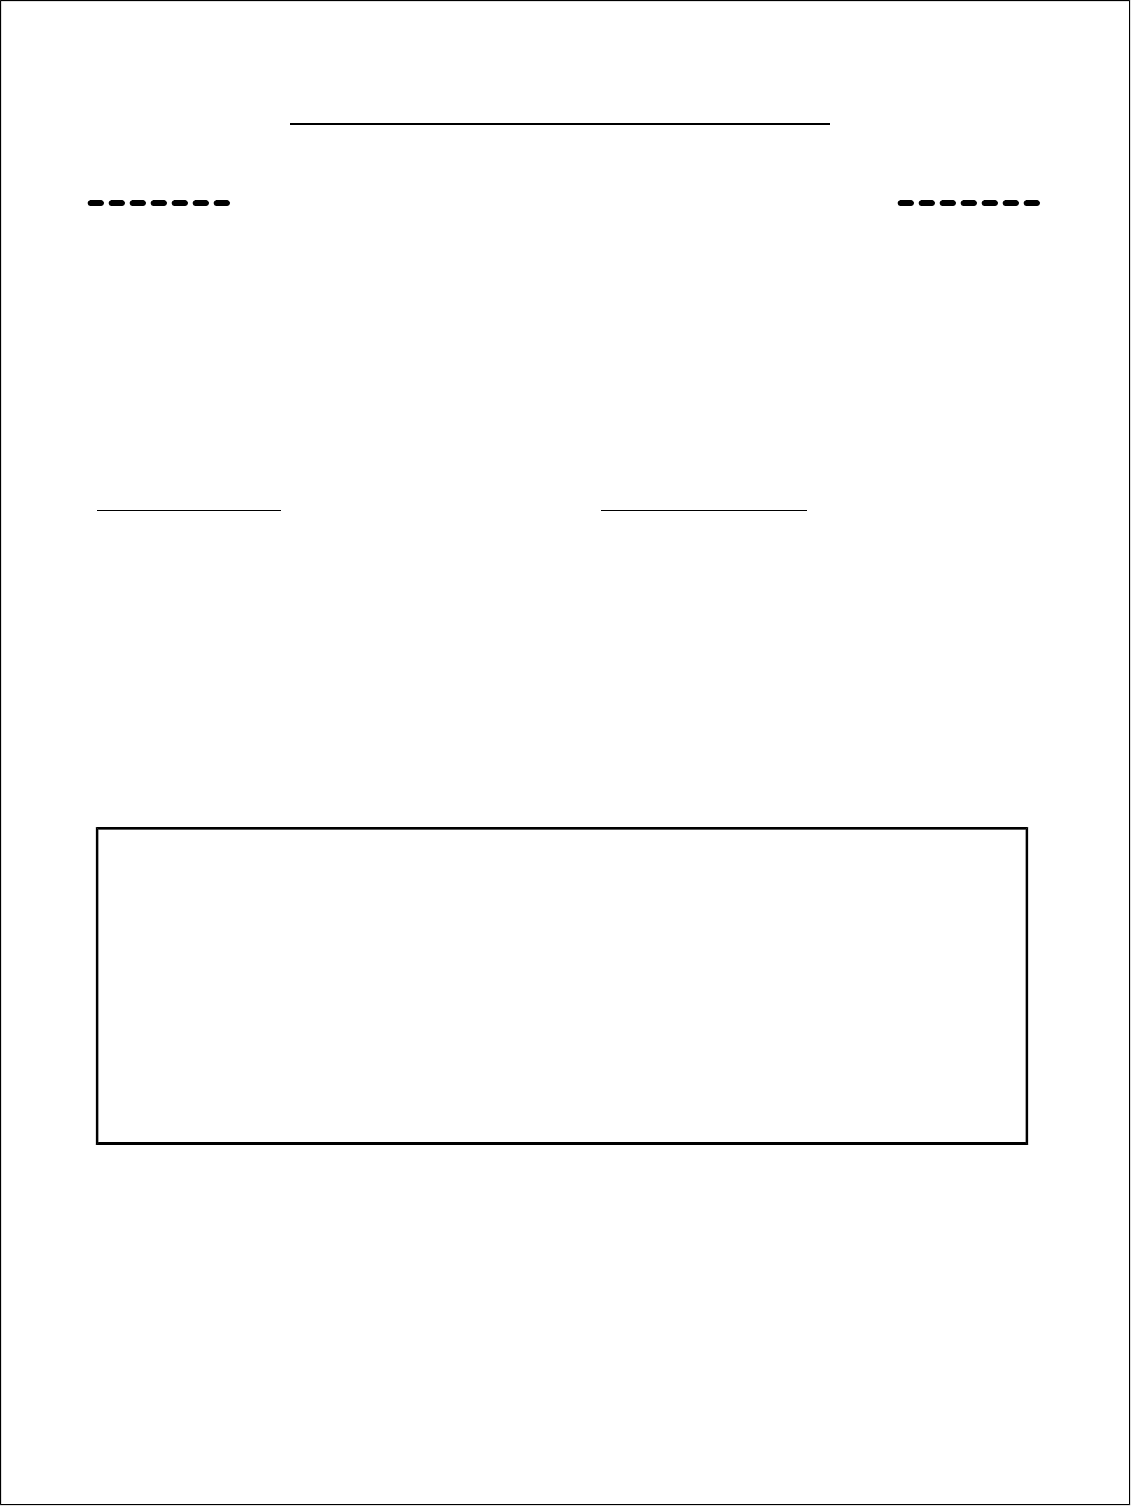 the confidential fax cover sheet 3 can help you make a confidential fax cover sheet 3